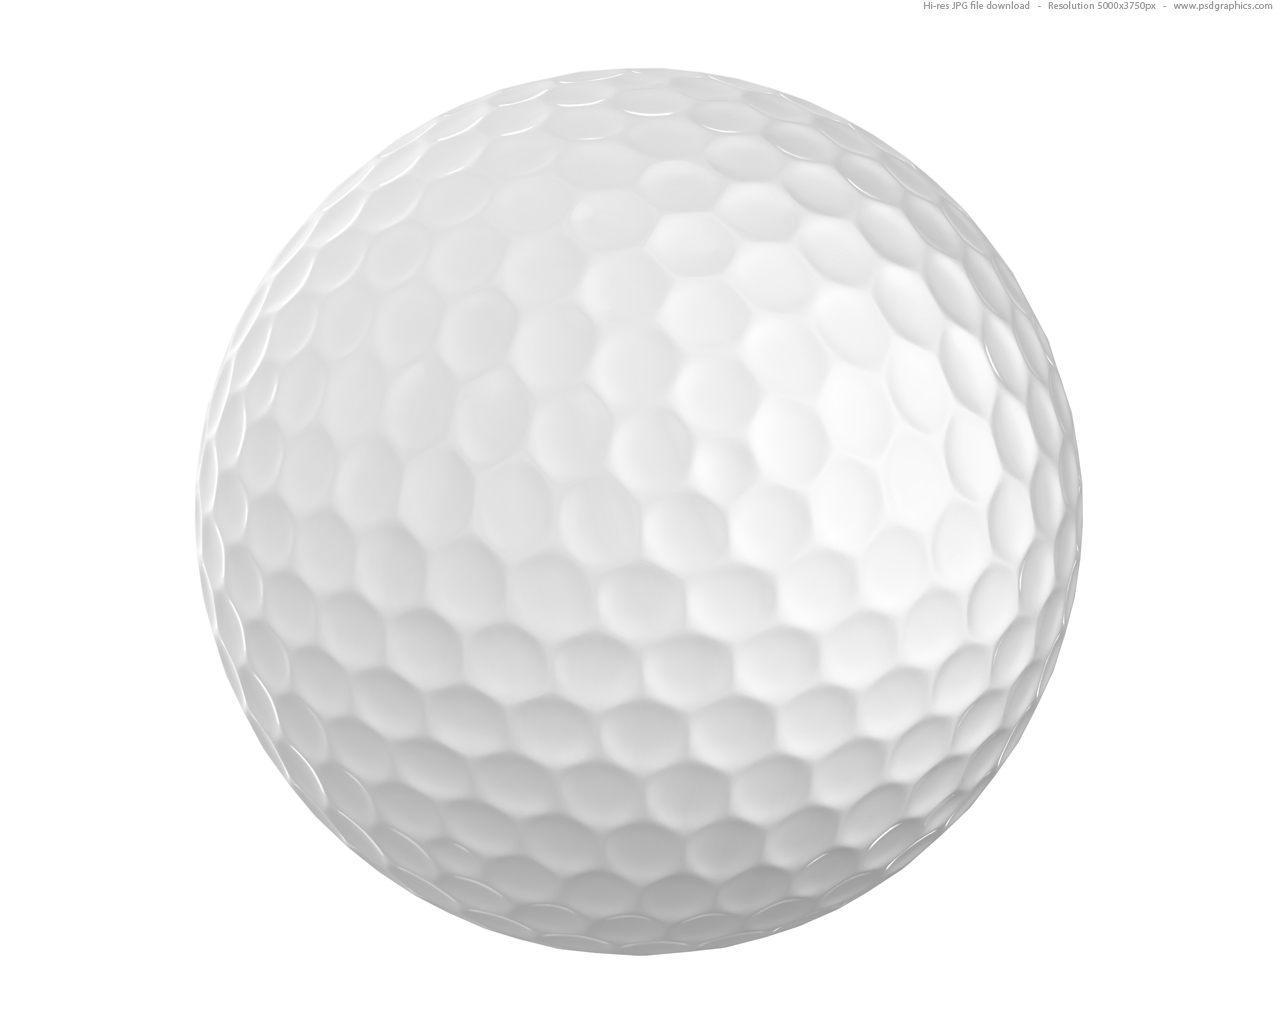 pictures of golf balls clipart - photo #9